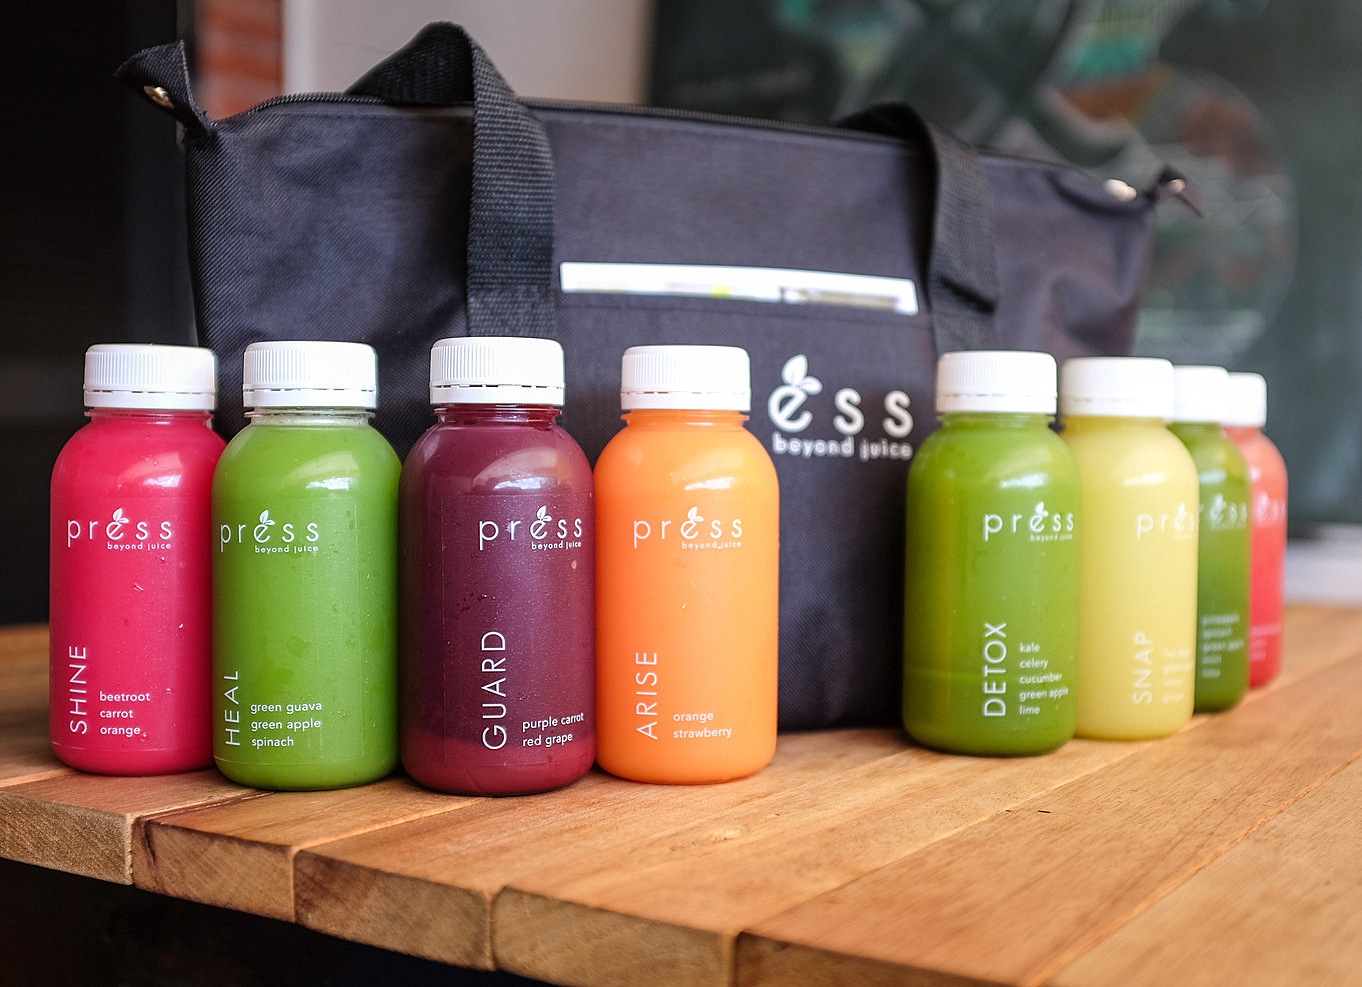 juice bar Est 1983 serving the freshest juices and licuados in town, nothing frozen or  concentrated our menu also includes sandwiches, salads, our famous  quesadilla,.